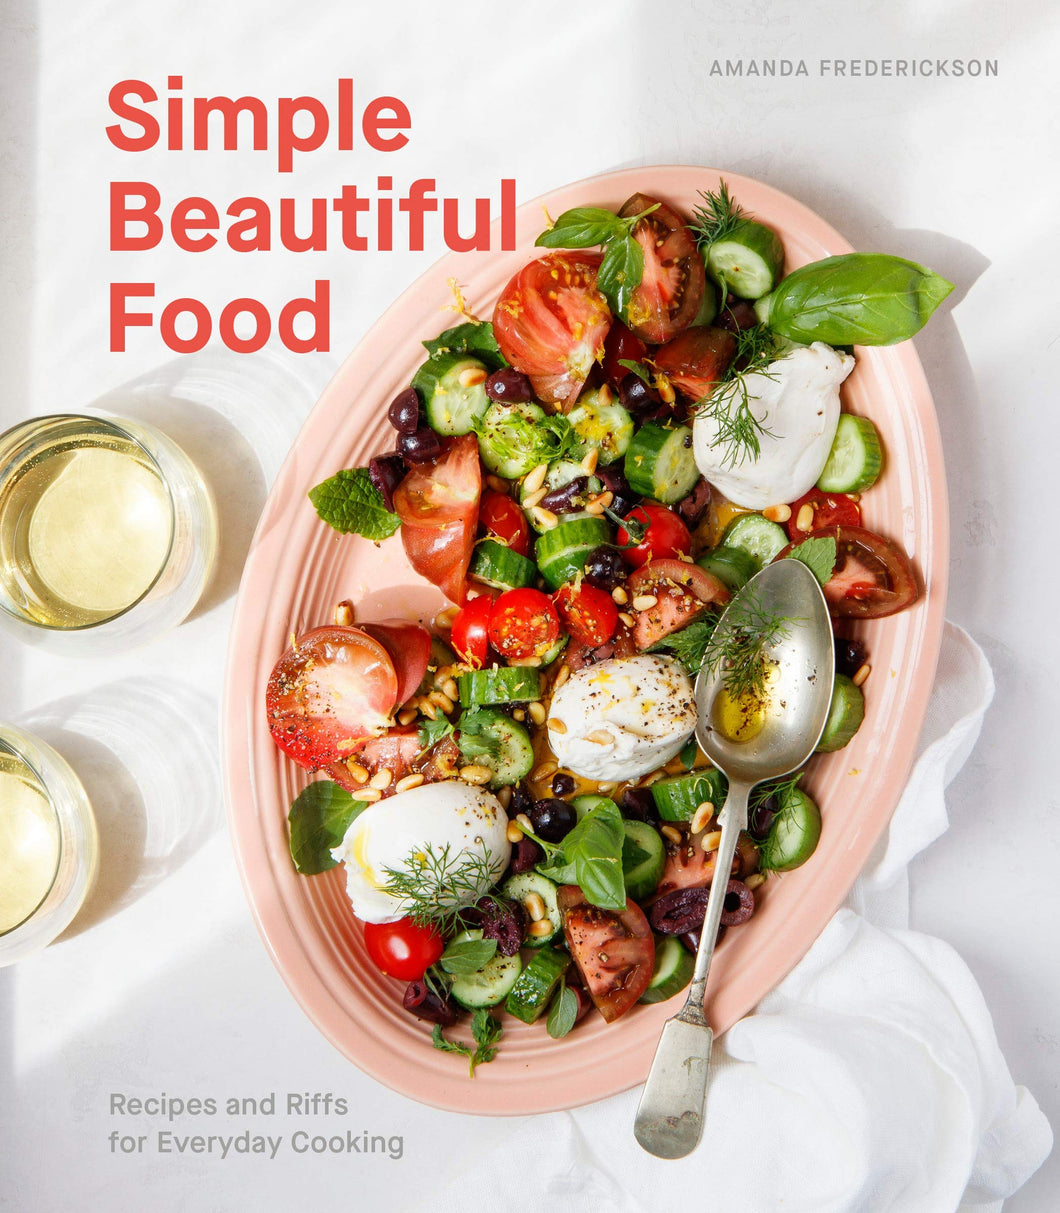 Simple Beautiful Food